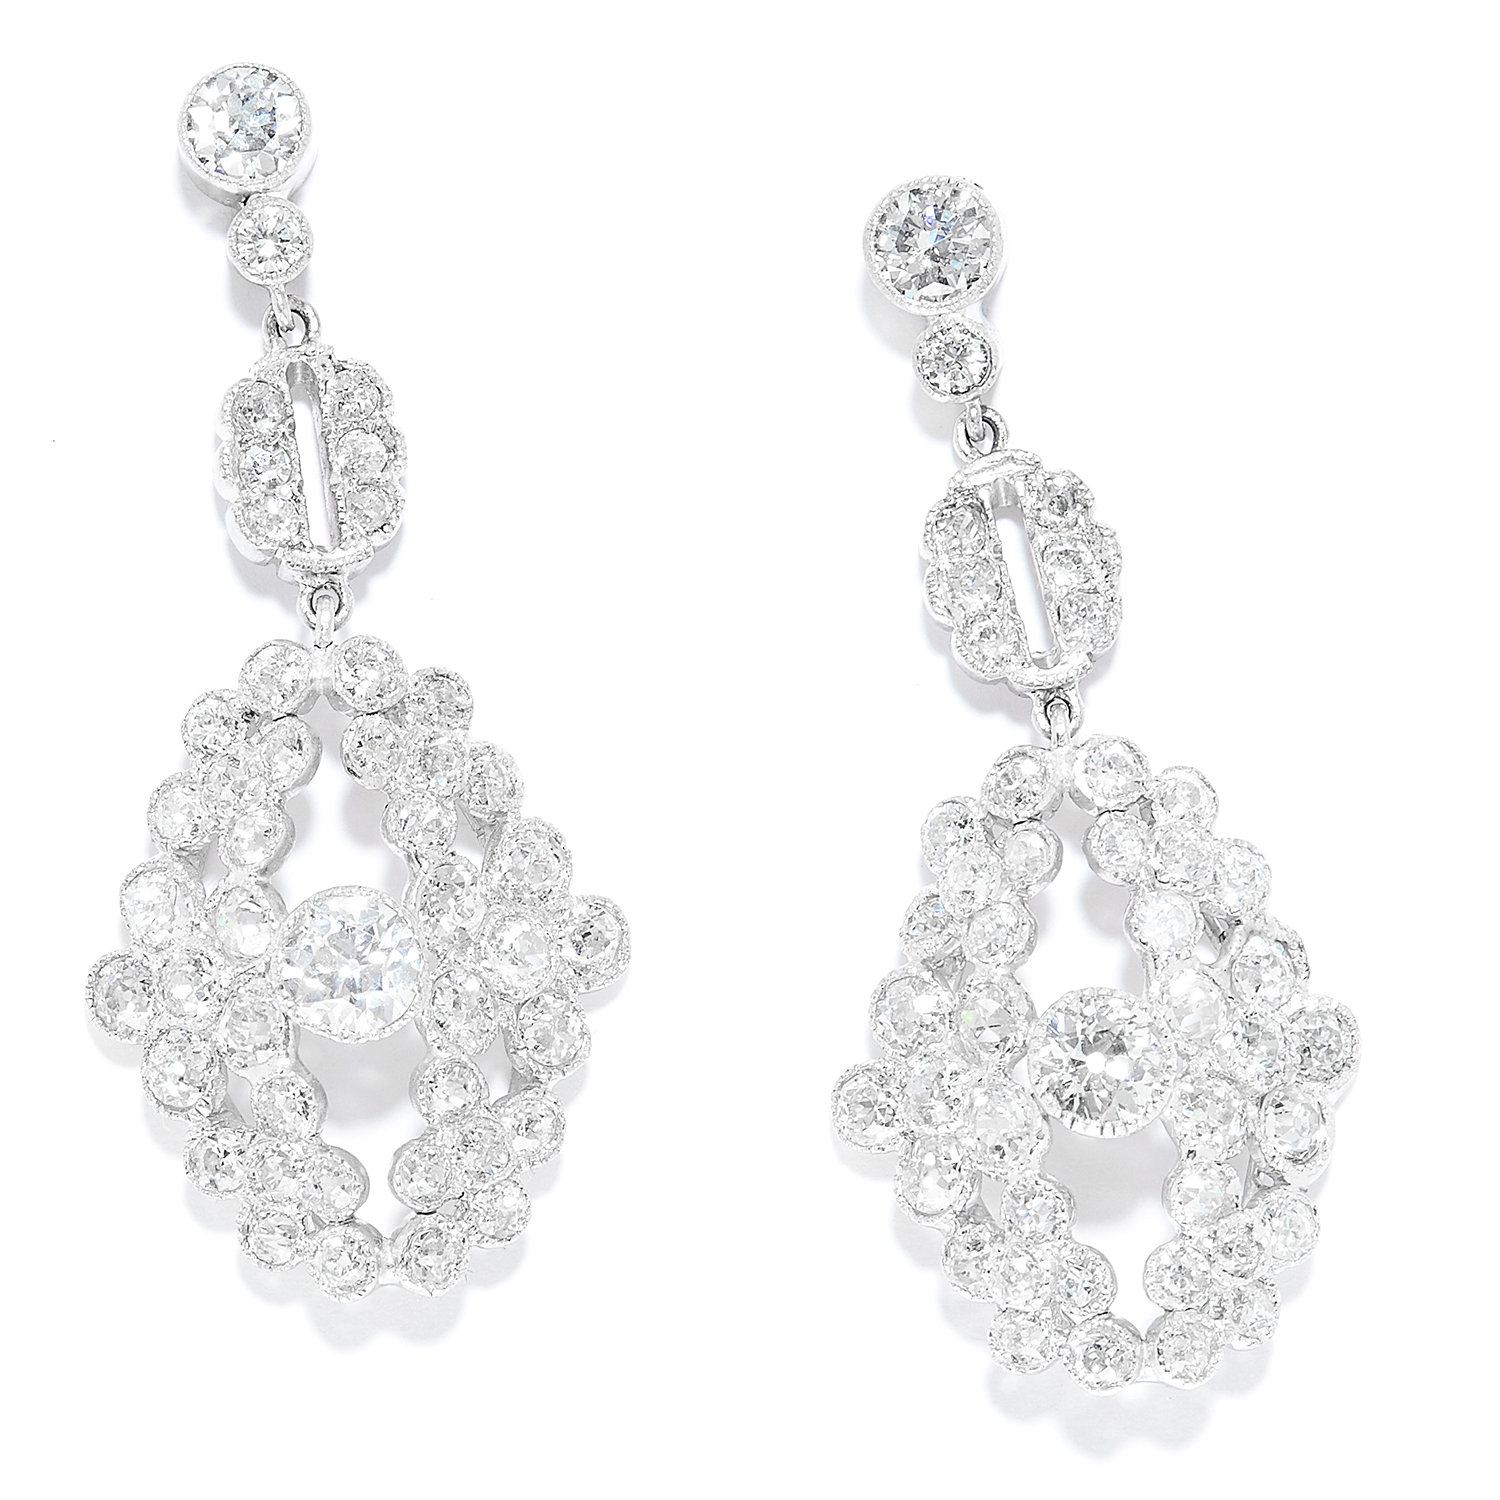 Los 33 - ANTIQUE DIAMOND EARRINGS in 18ct white gold, each set with a principal old cut diamond between